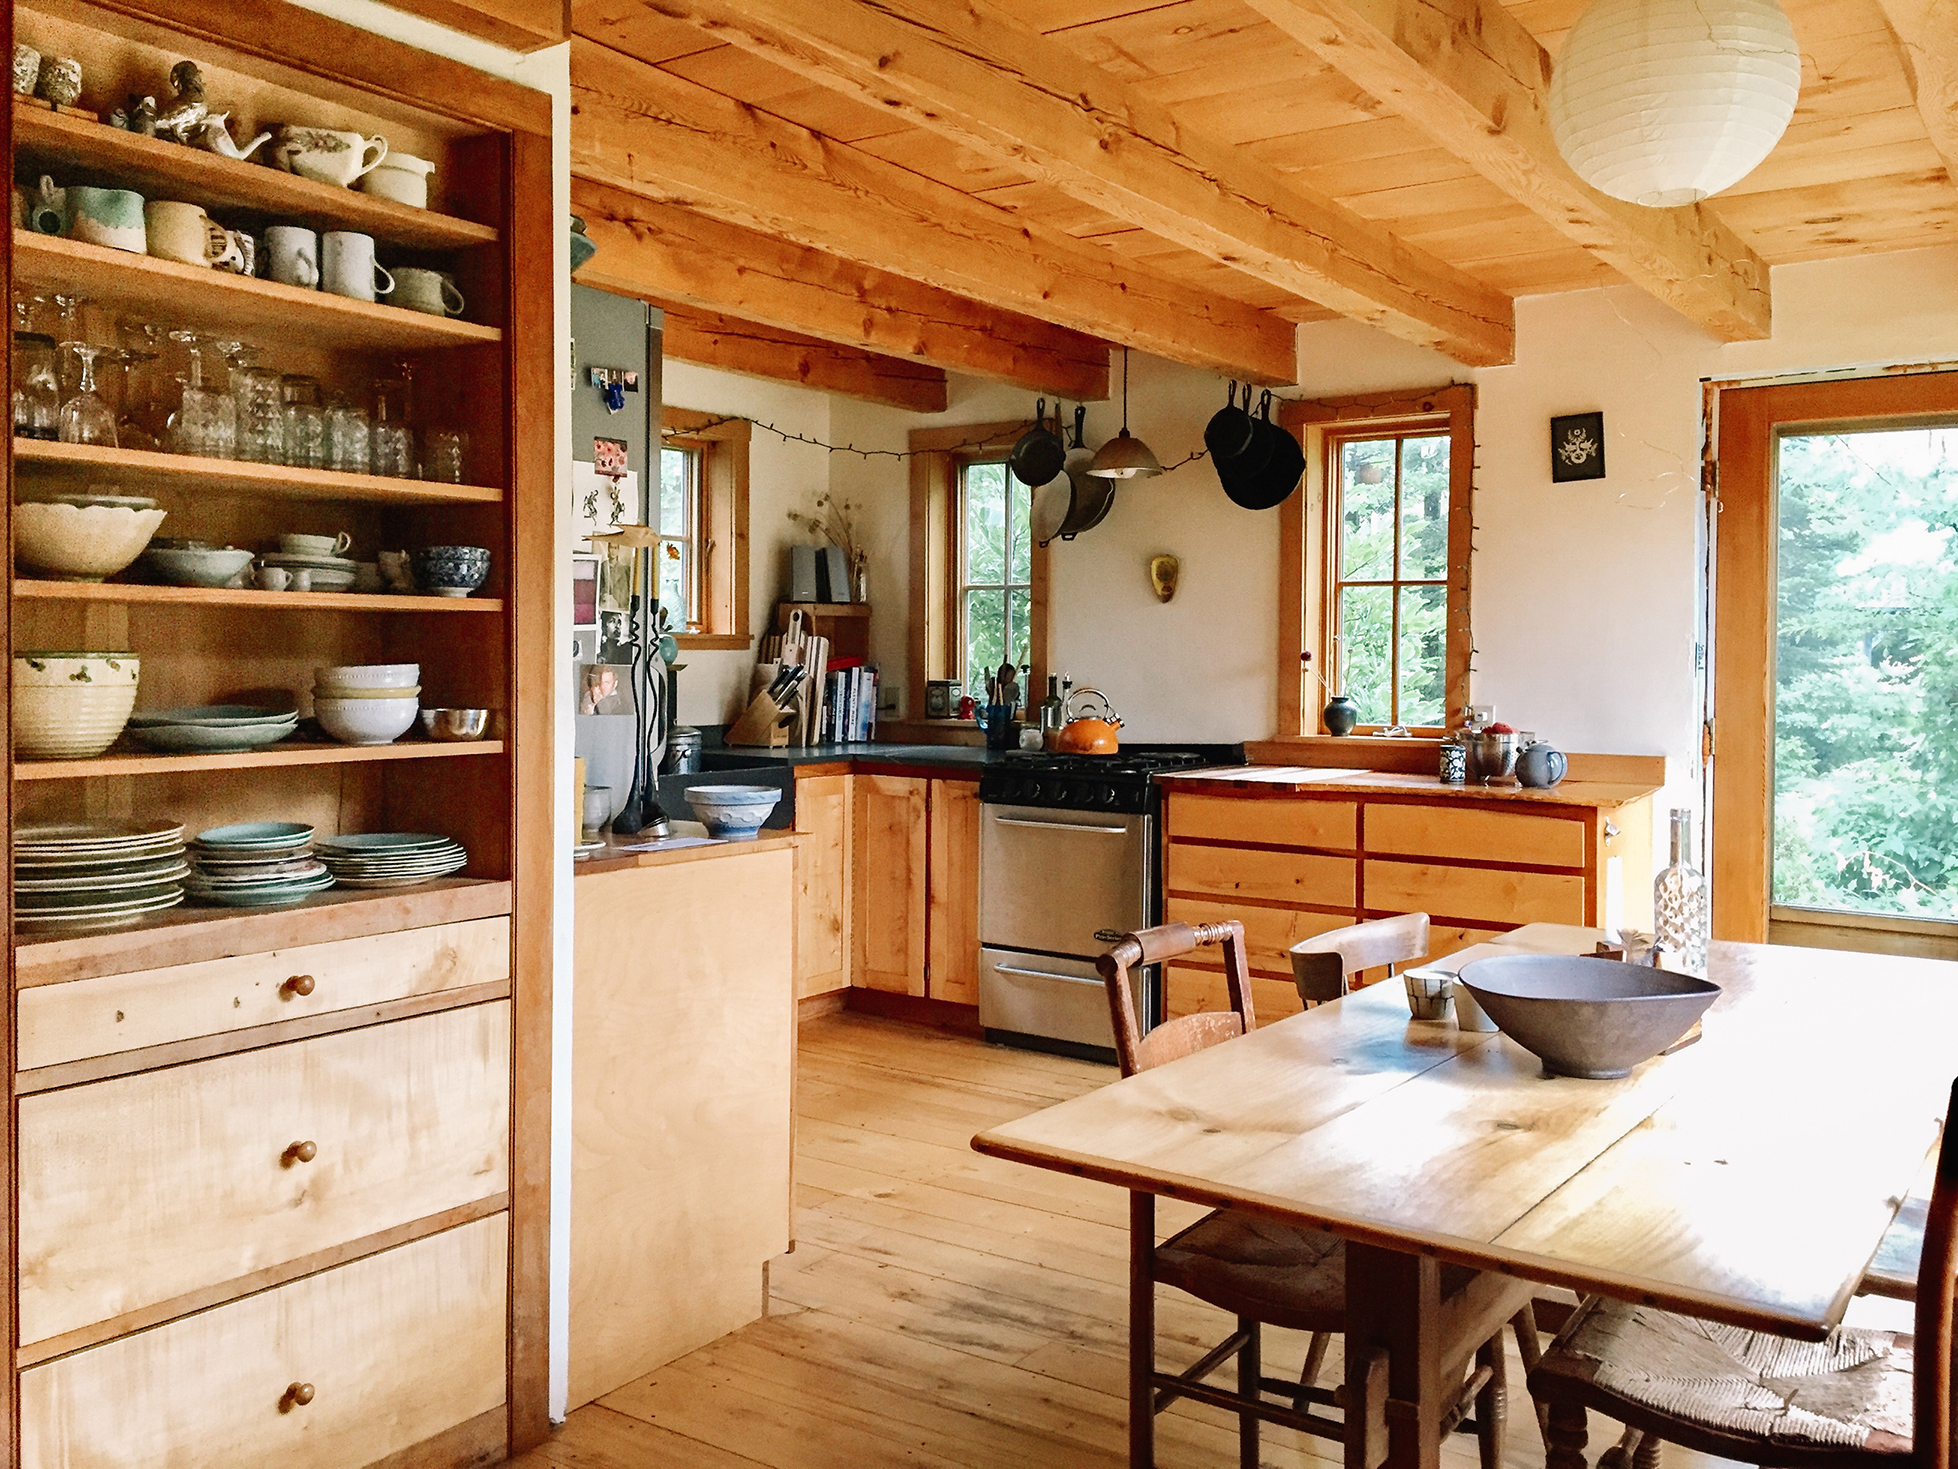 A vermont cabin built by hand to house a family s history for Kitchen cabinets vermont